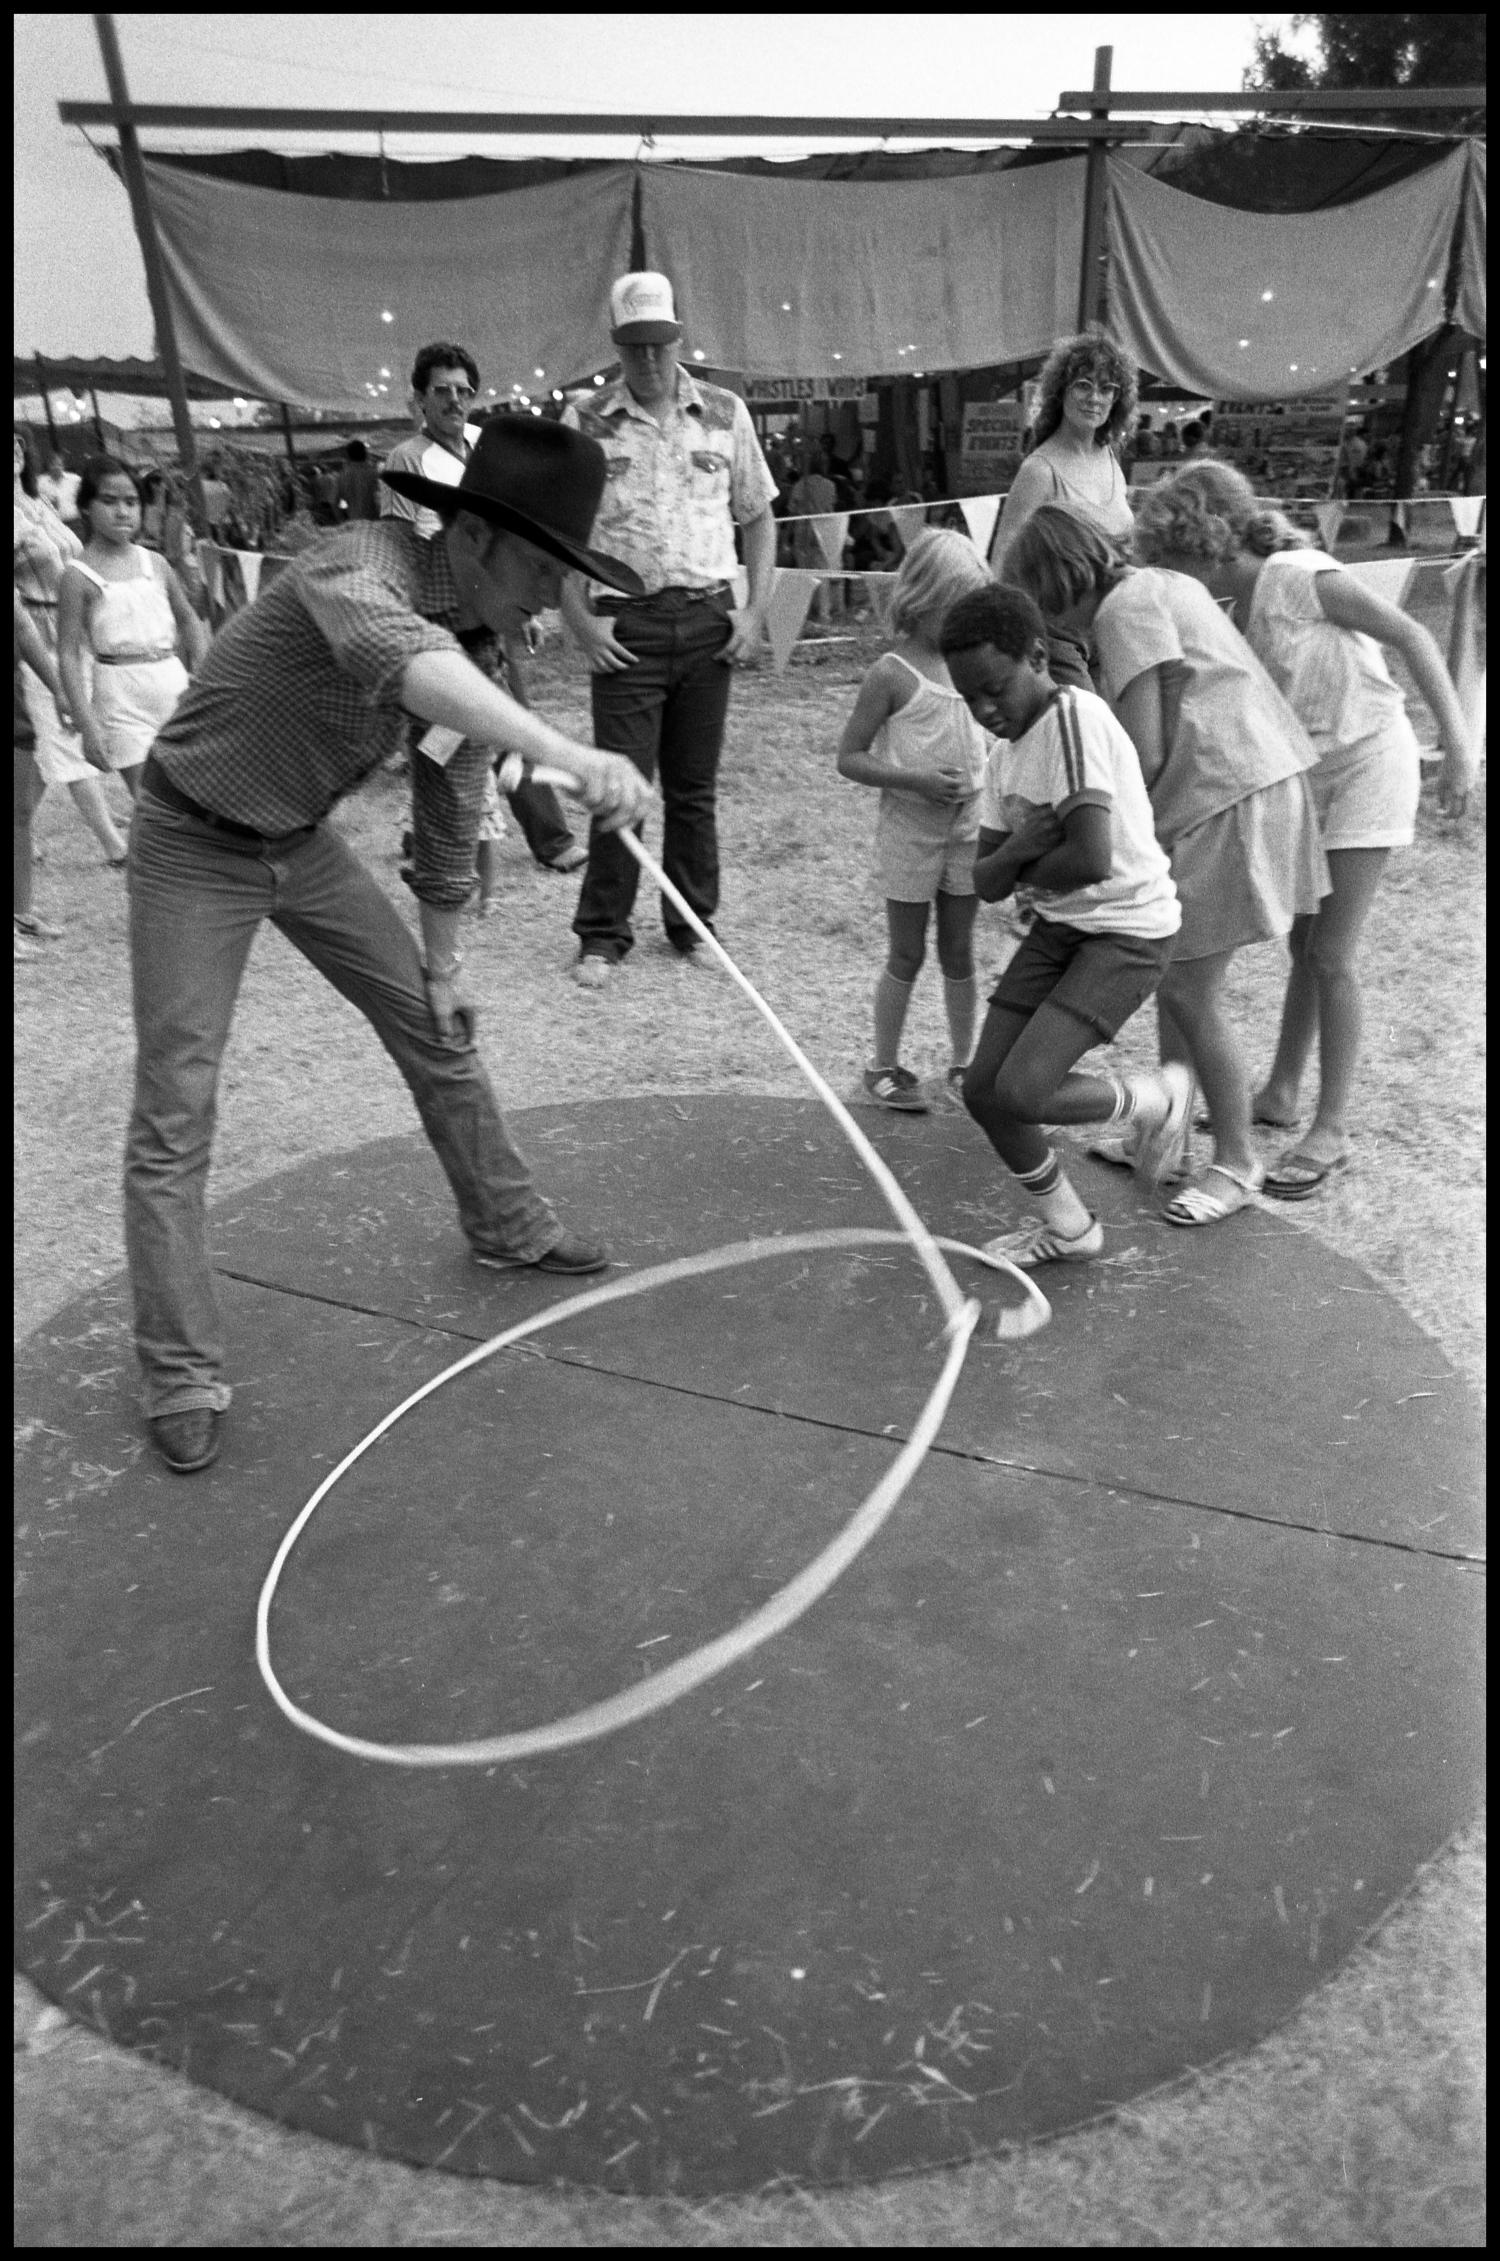 Kevin Fitzpatrick Demonstrating Trick Roping The Portal To Texas History